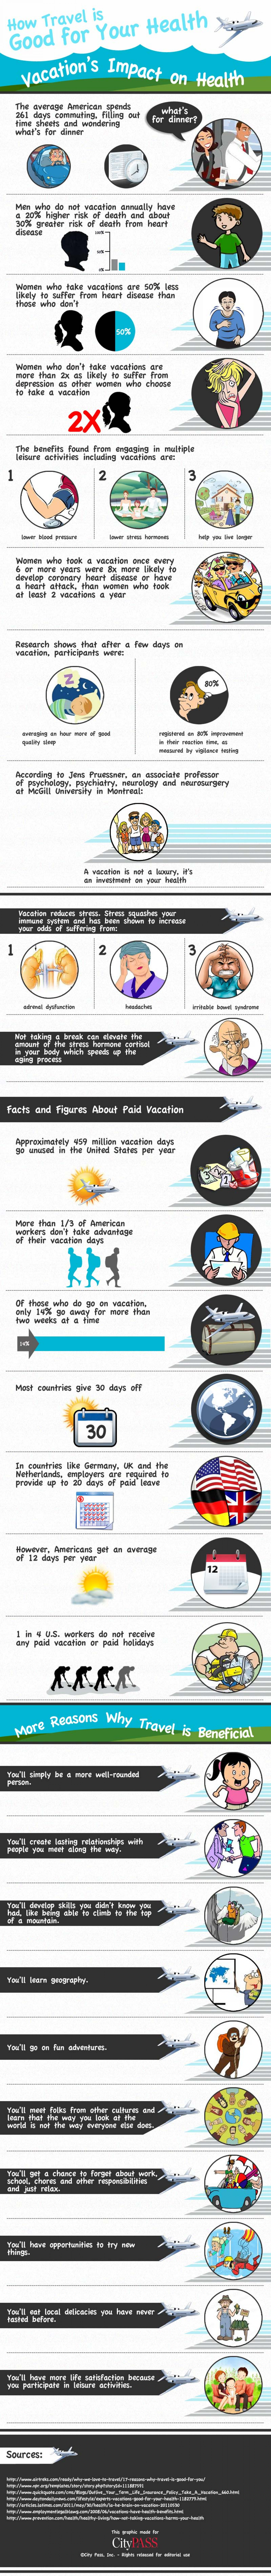 How Travel is Good for Your Health Infographic